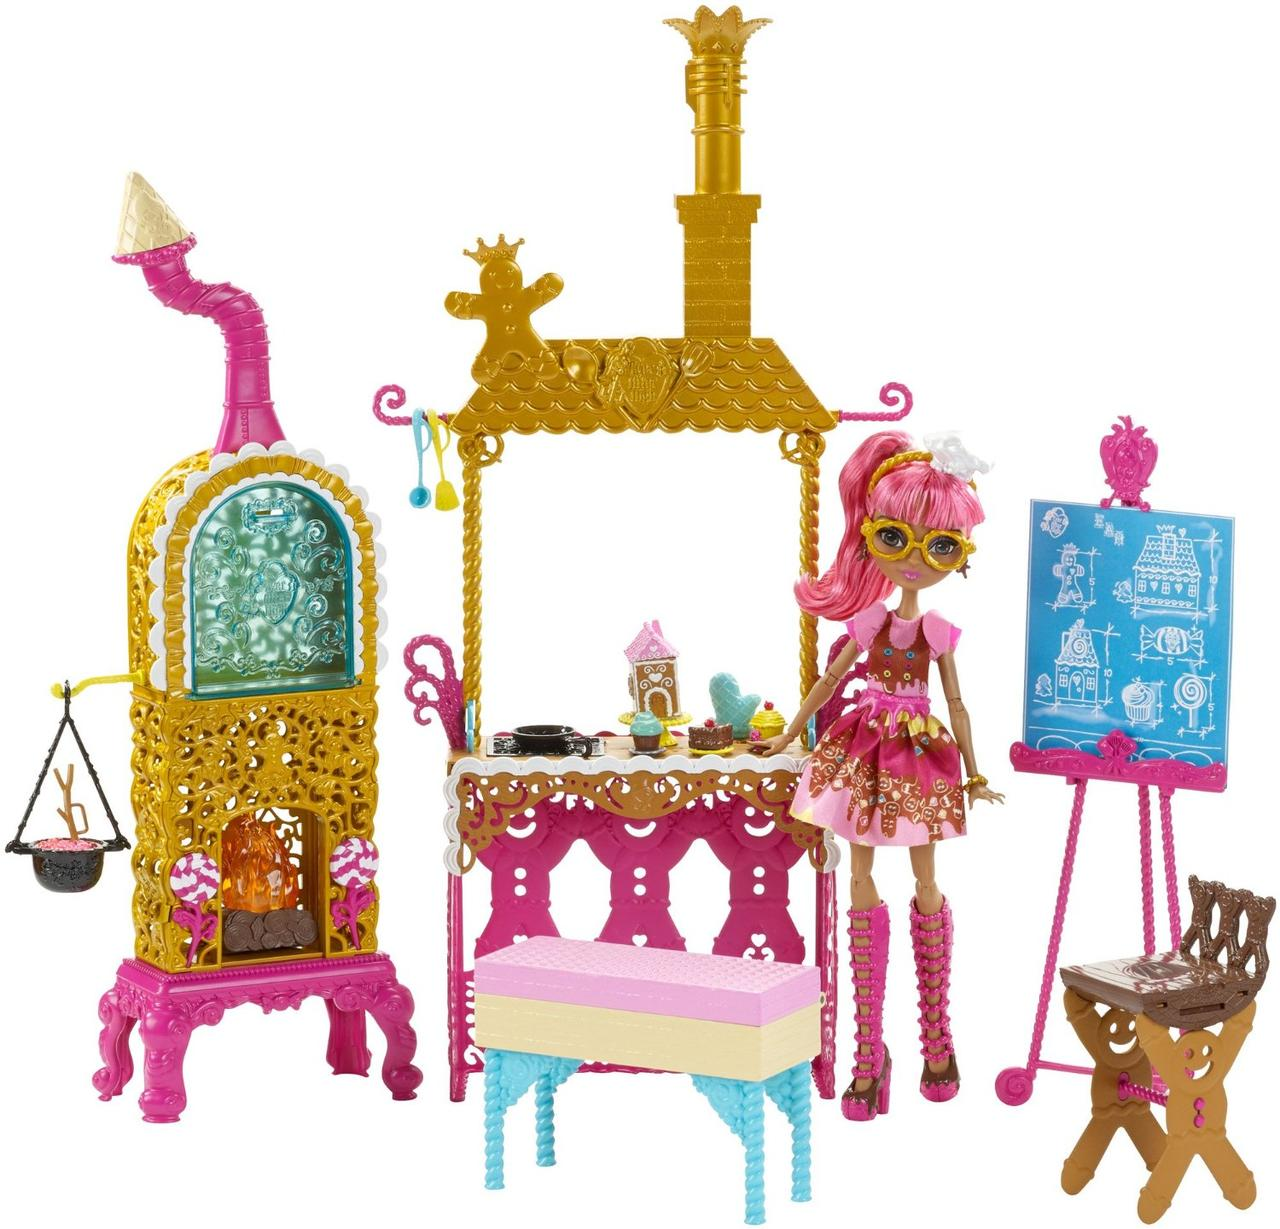 Ever After High Кухня и кукла Джинджер Бредхаус Покрытые Сахаром Sugar Coated Kitchen with Ginger Breadhouse Doll Play Set